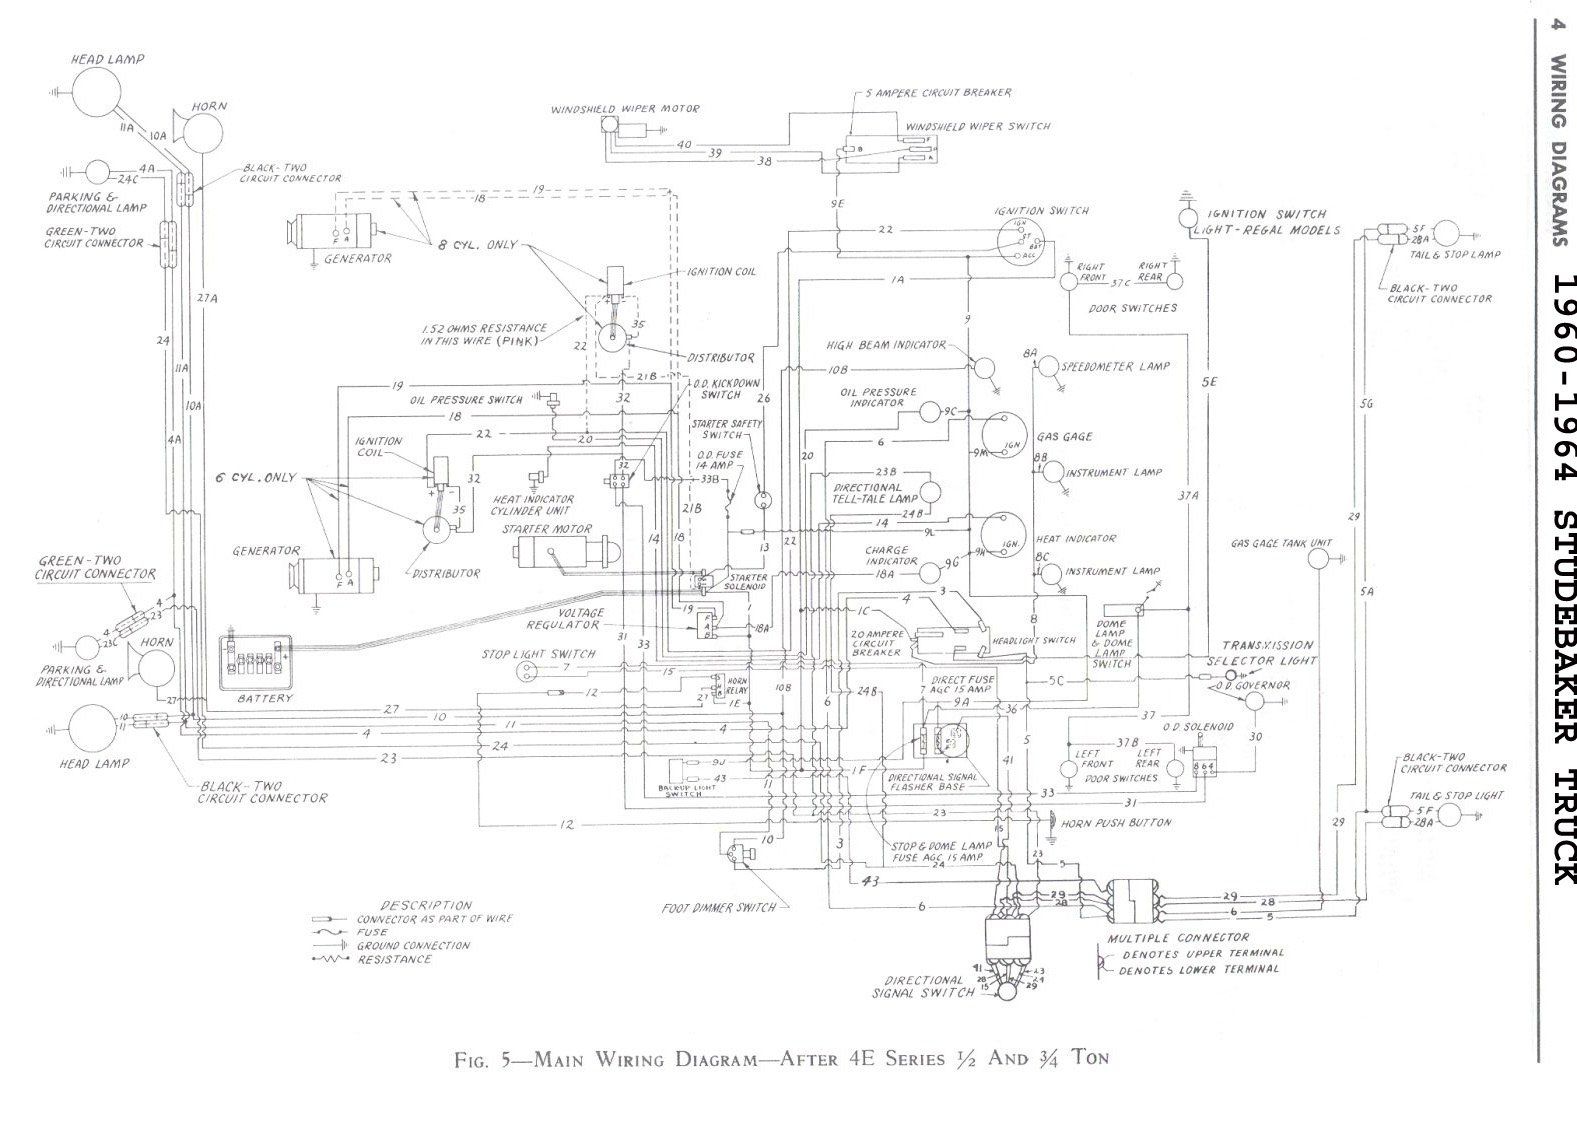 Studebaker Wiring Harness : 25 Wiring Diagram Images